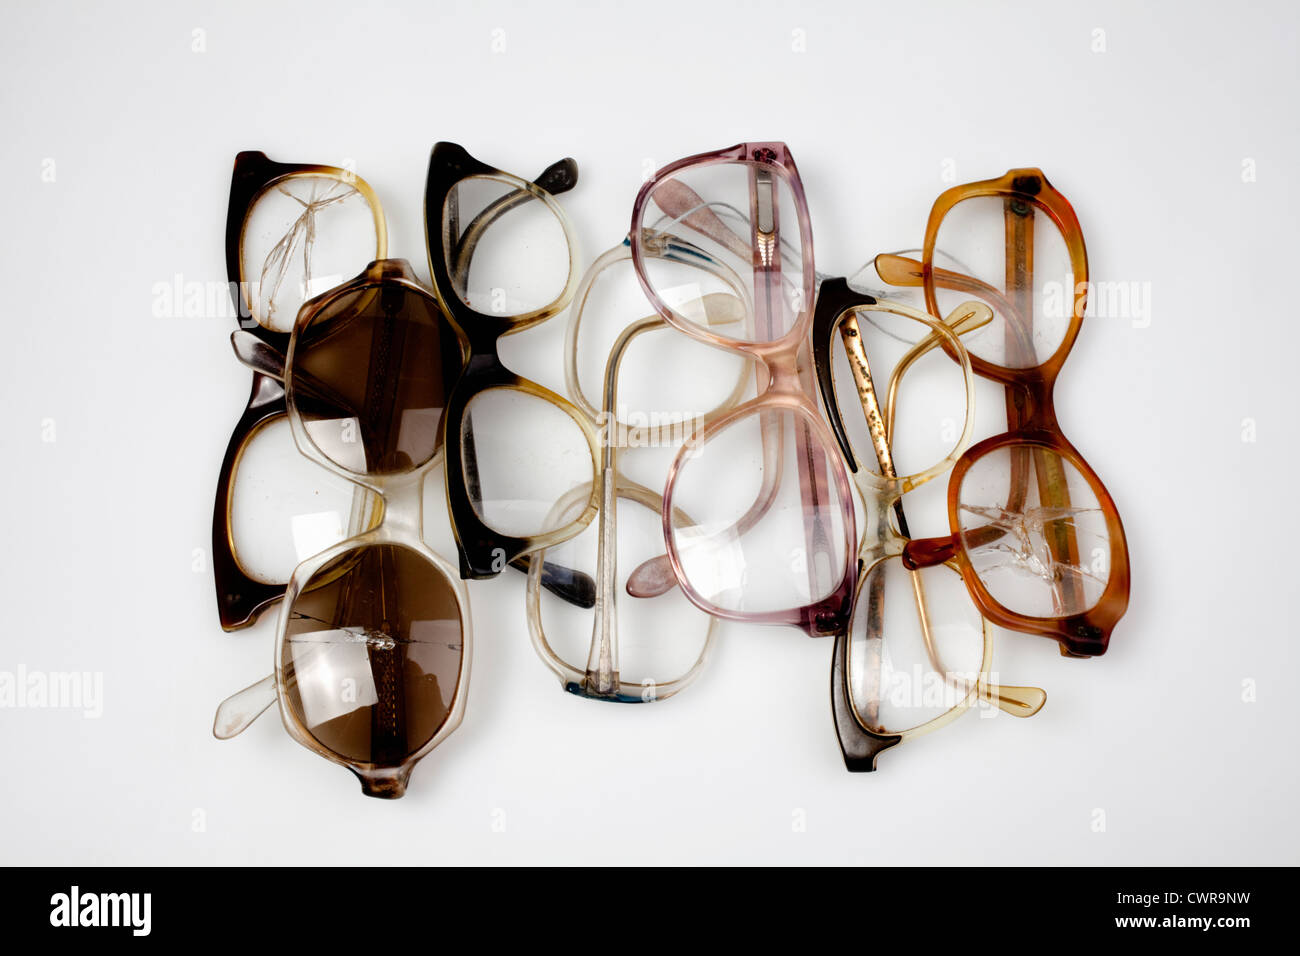 Many old horn-rimmed glasses with cracked lenses Stock Photo